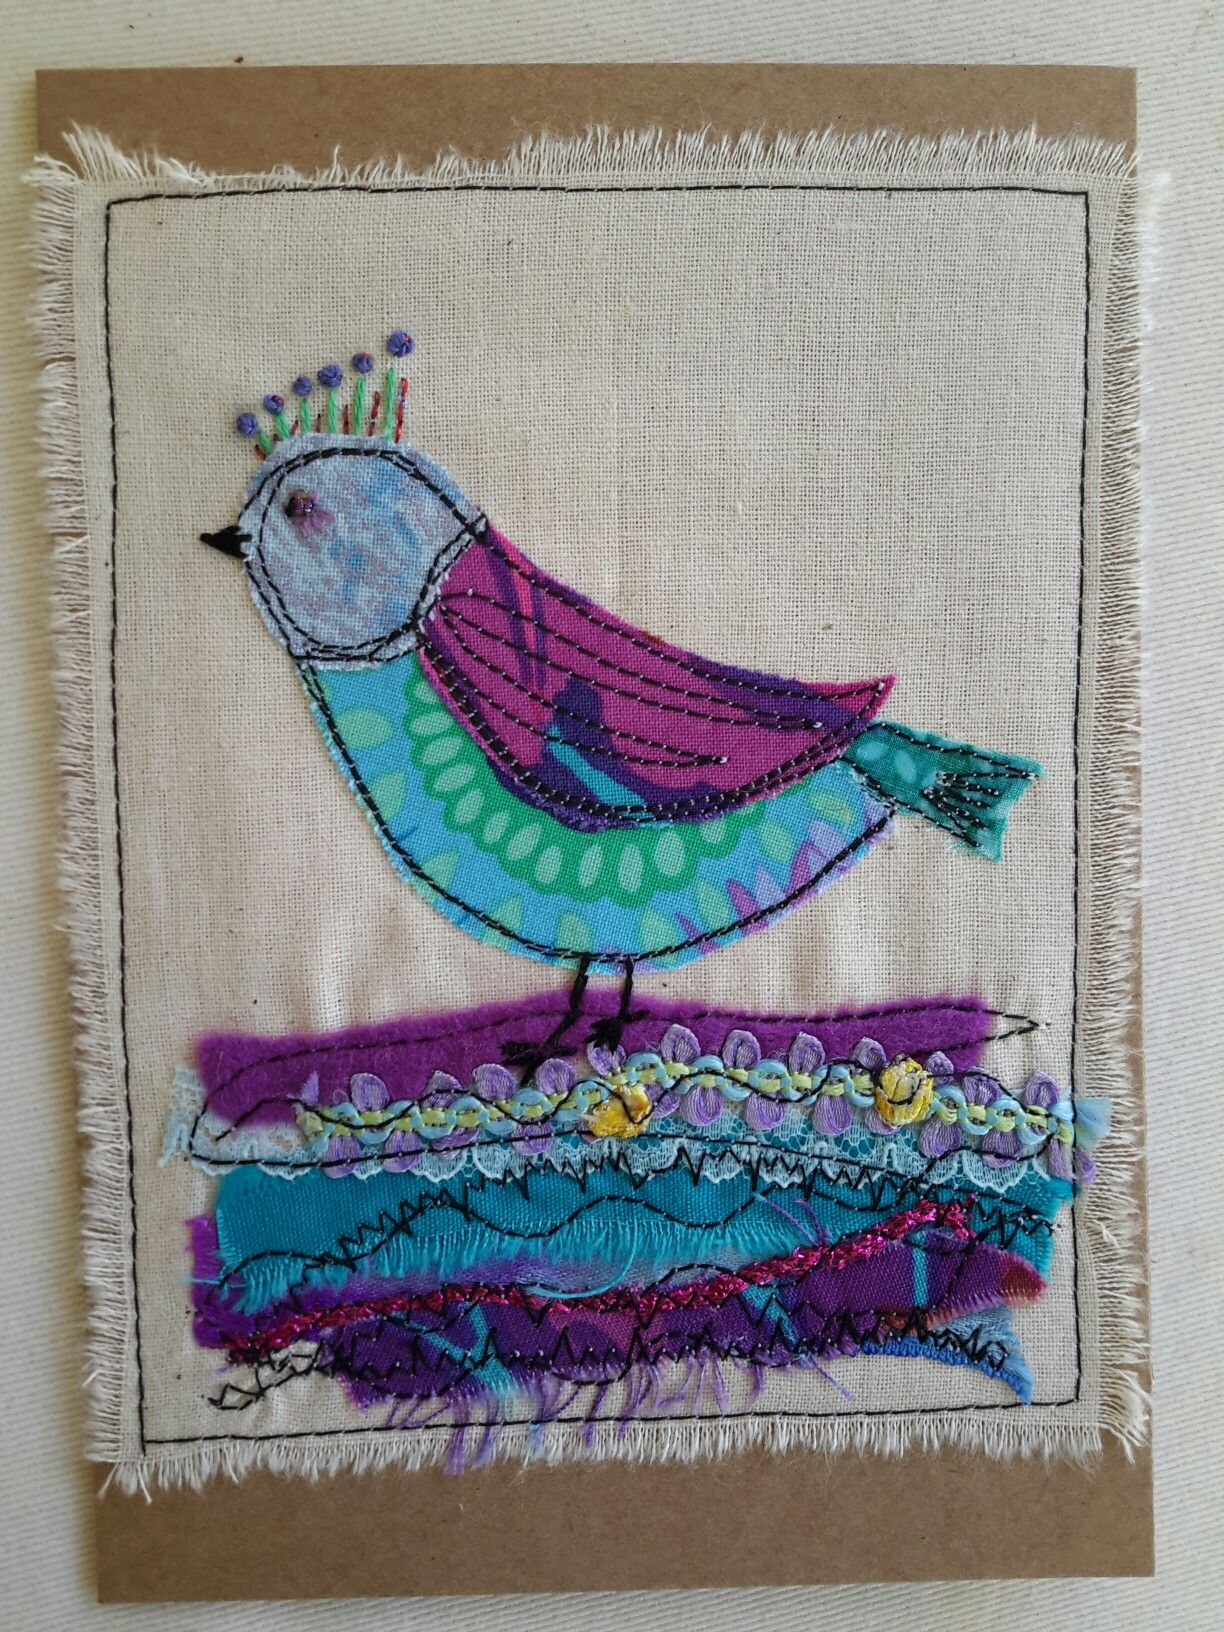 Pin by Tilly McLeod on Free motion sewing cards I have made ...